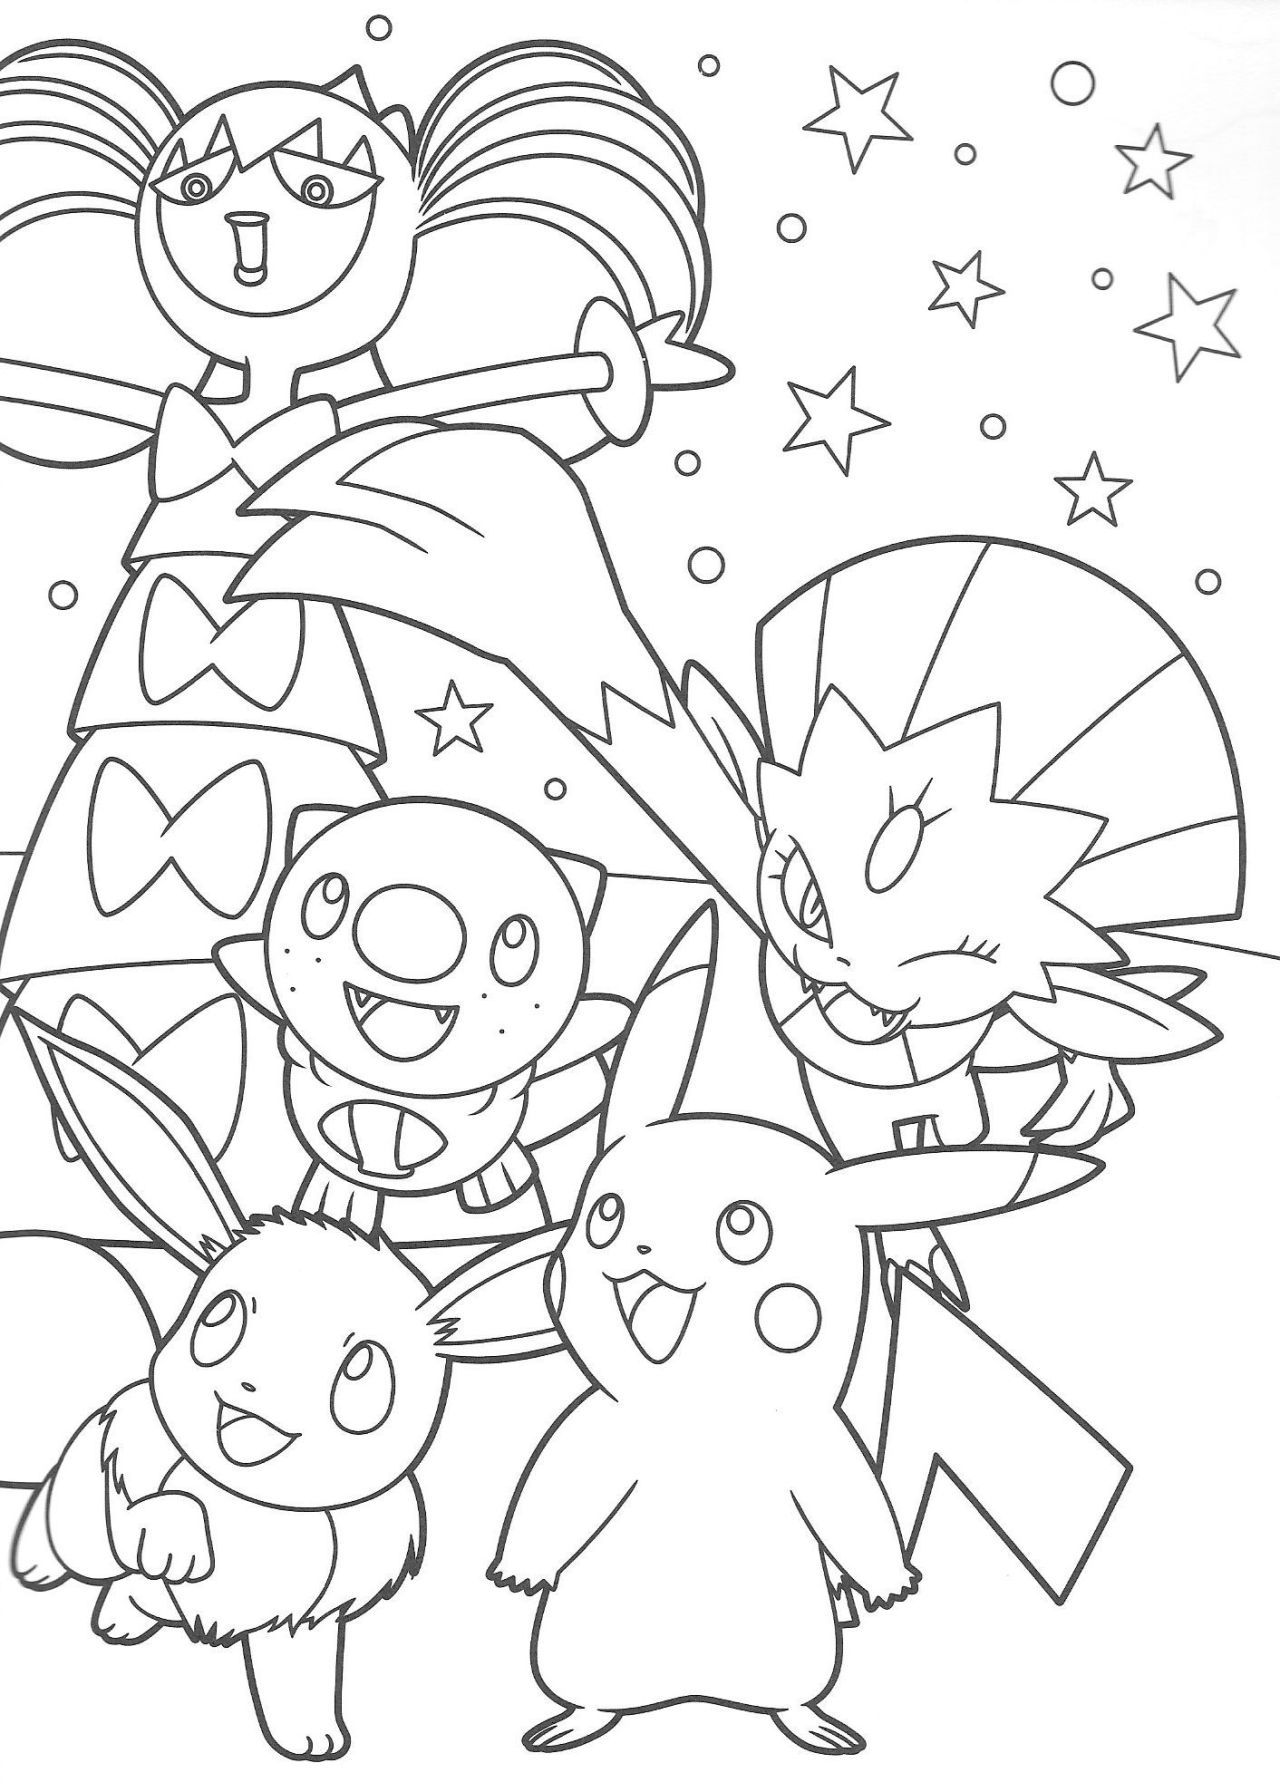 Pokemon Scans From Pacificpikachu S Collection Pikachu And Eevee Friends Coloring Book Pokemon Coloring Pages Pokemon Coloring Sheets Coloring Books